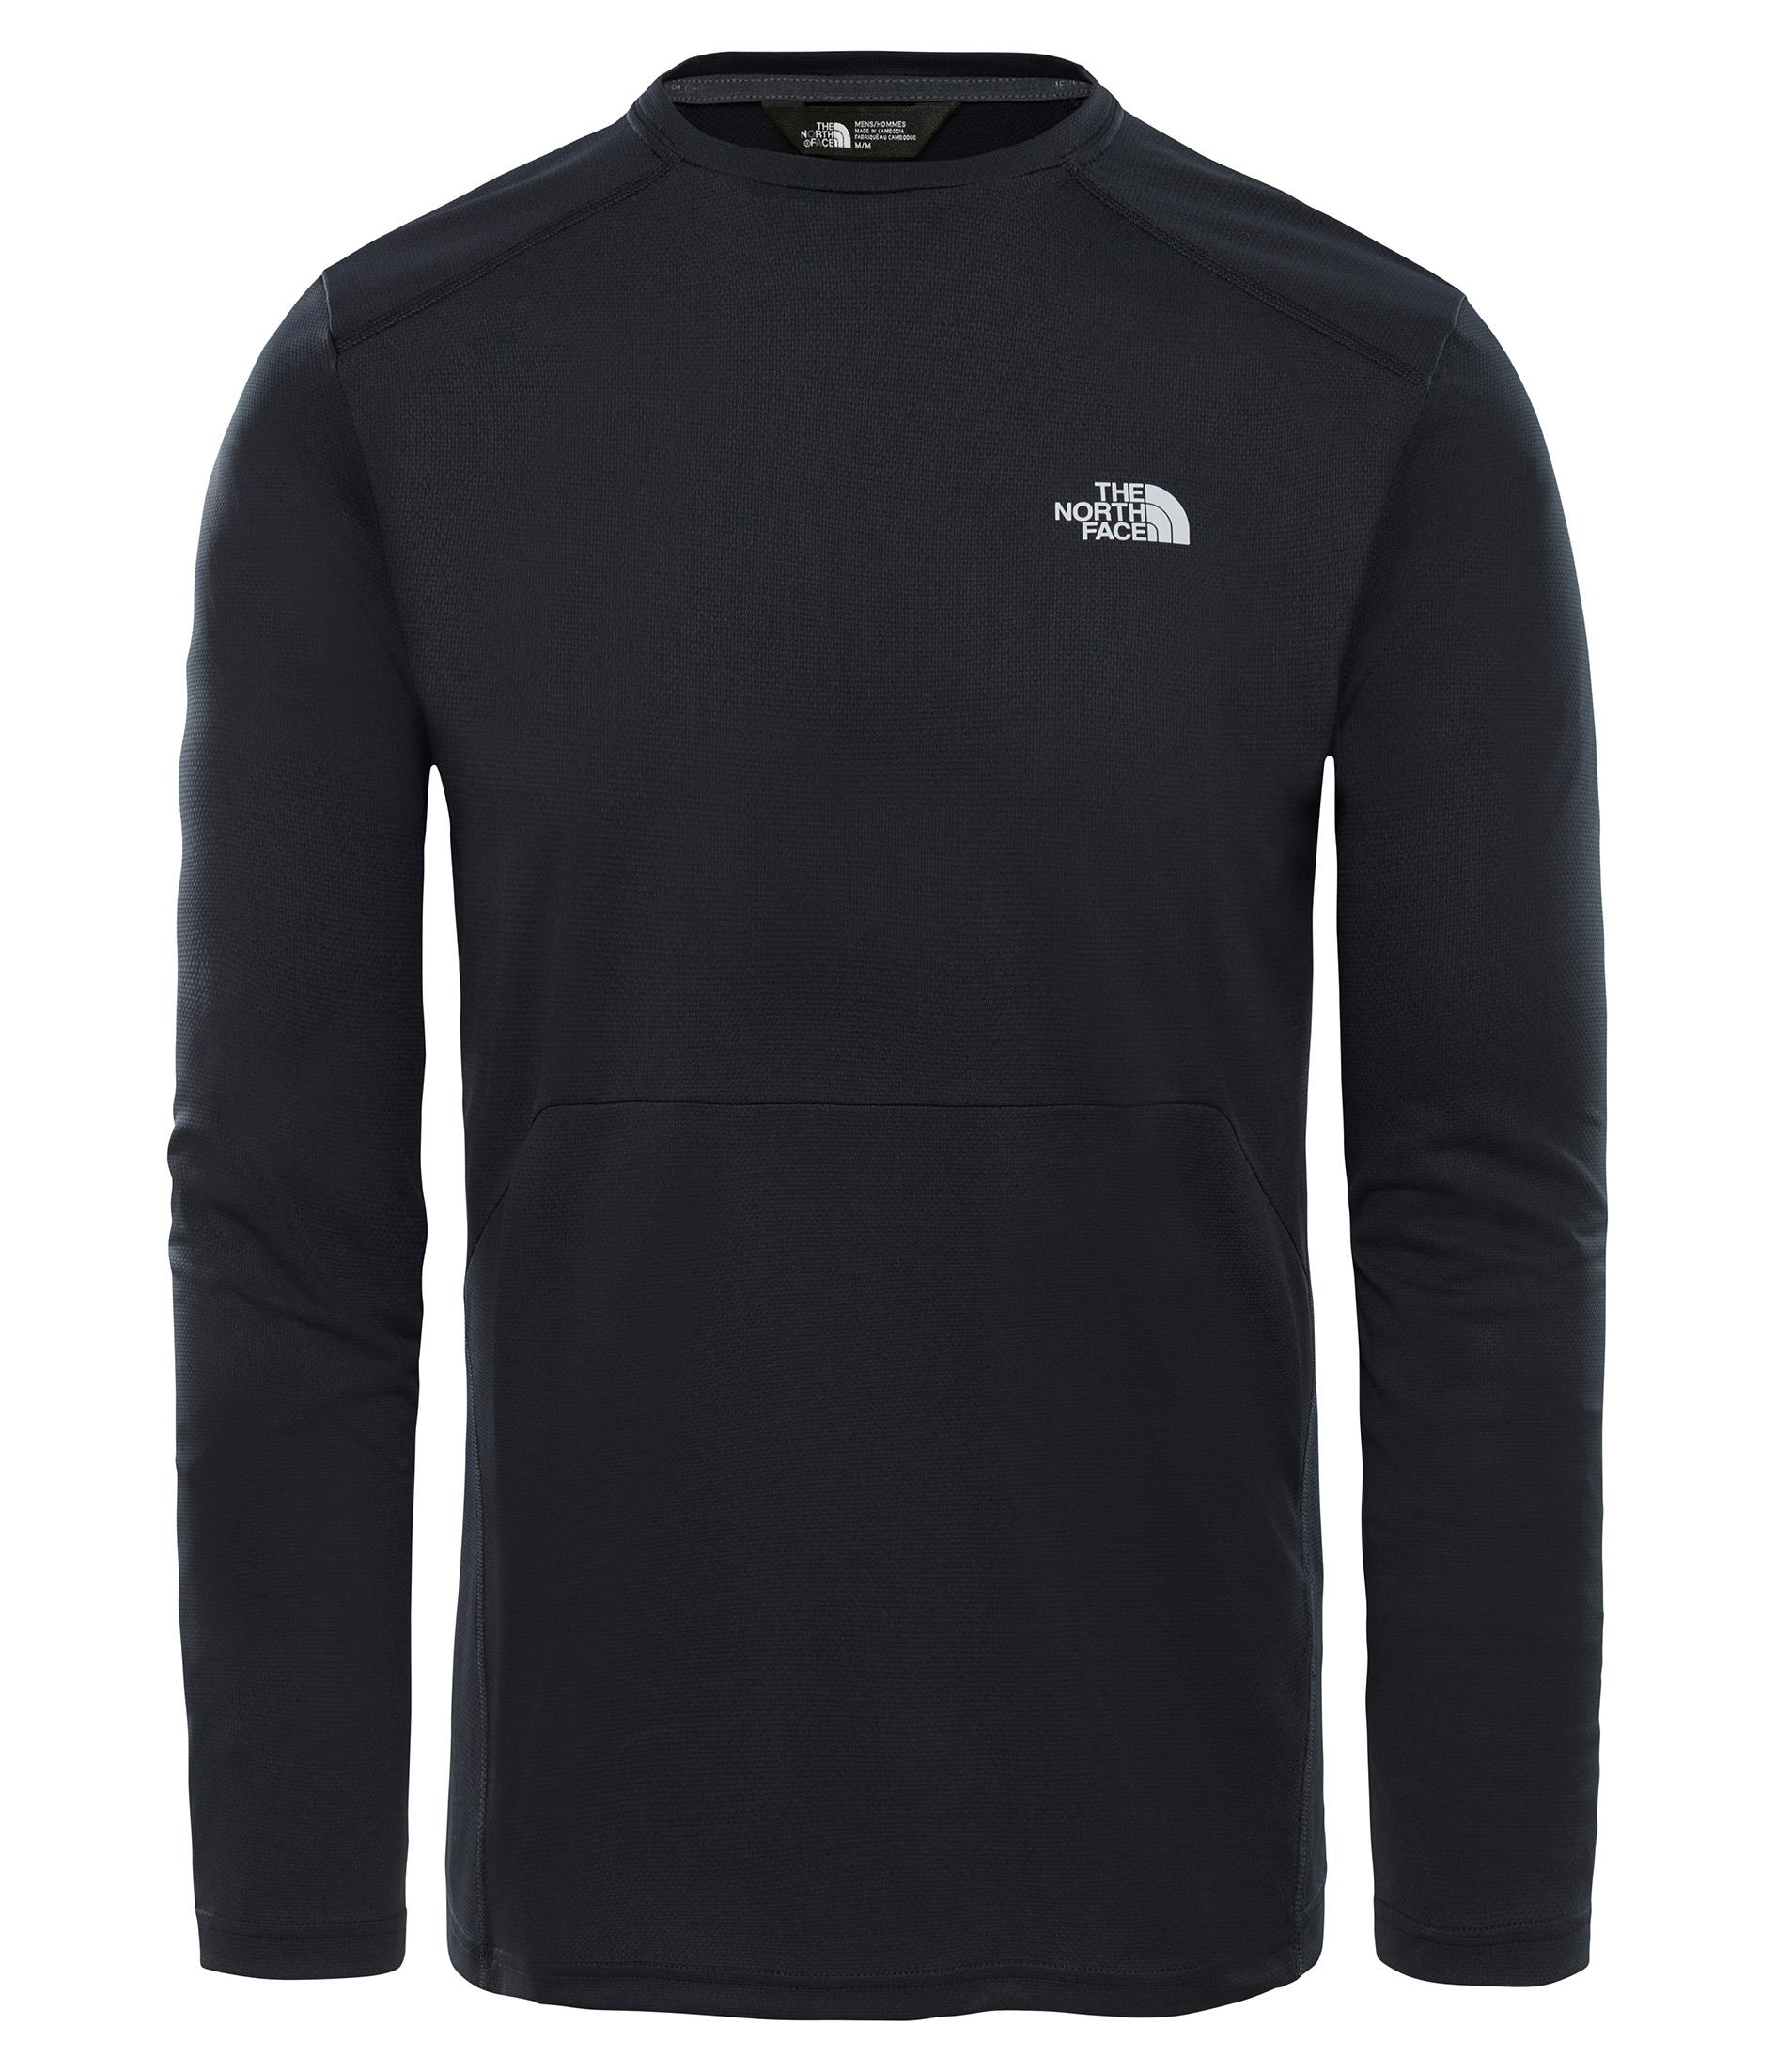 The North Face Erkek L/S Tech Tee T93L1XJK3